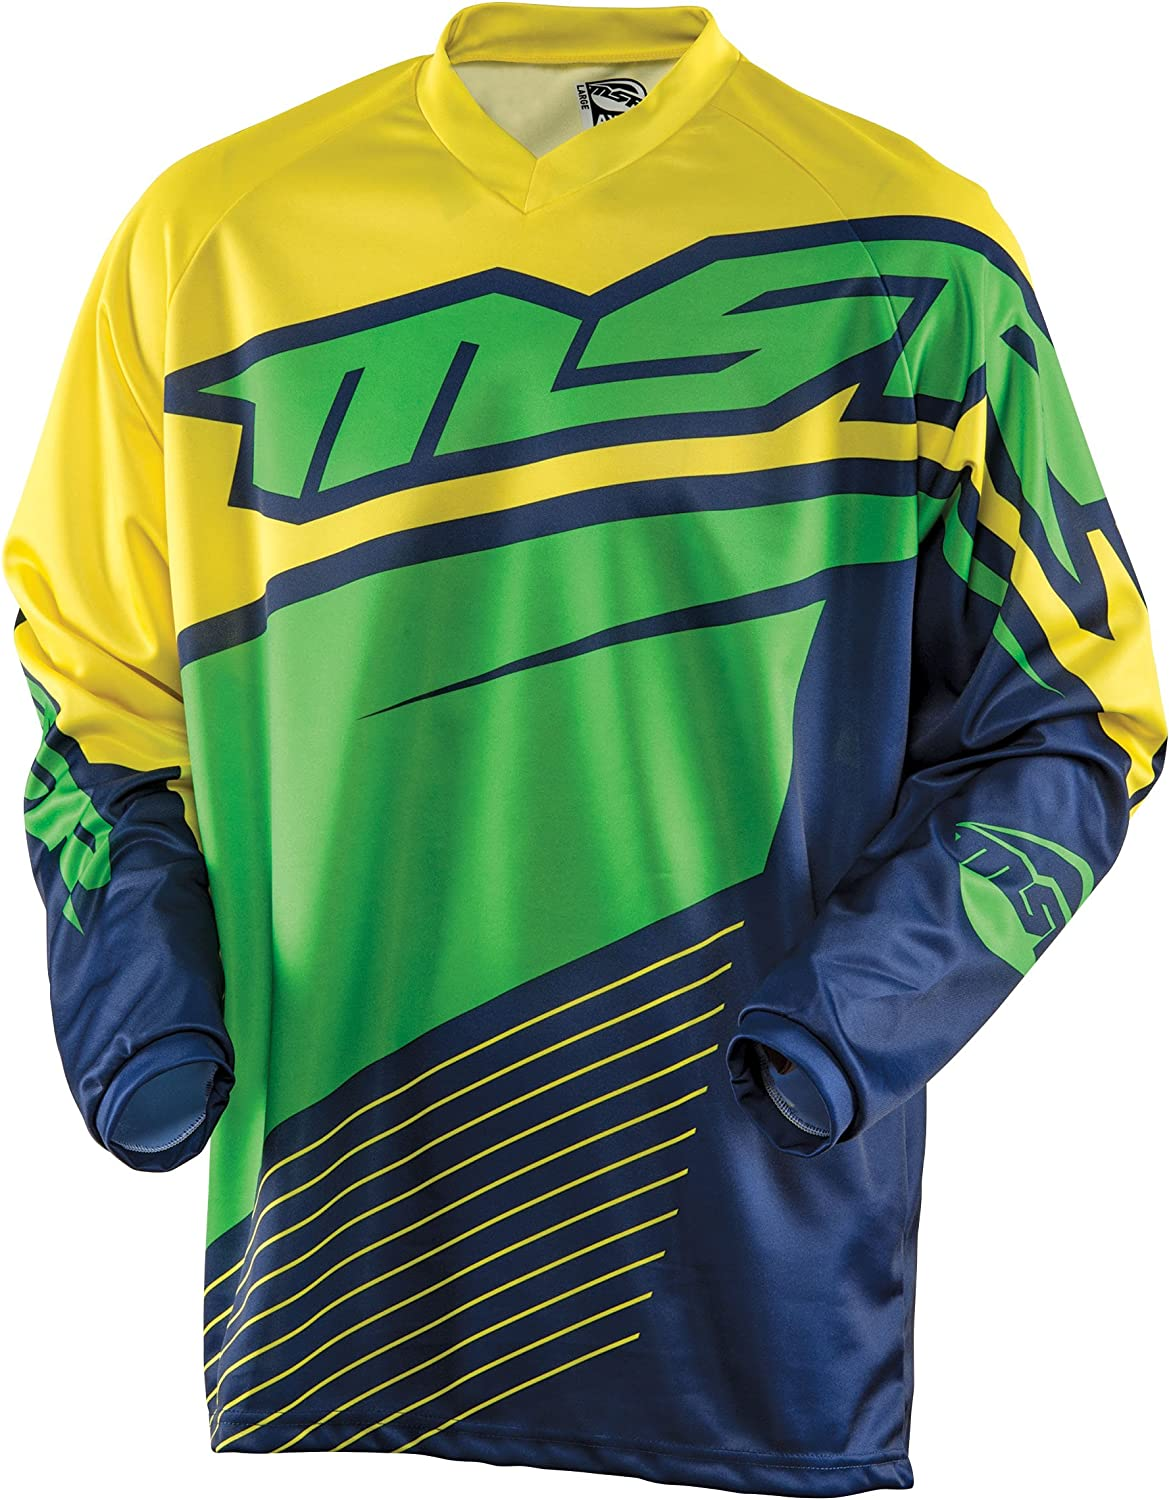 San Antonio Mall MSR Axxis Year-end annual account Jersey X-Large Youth